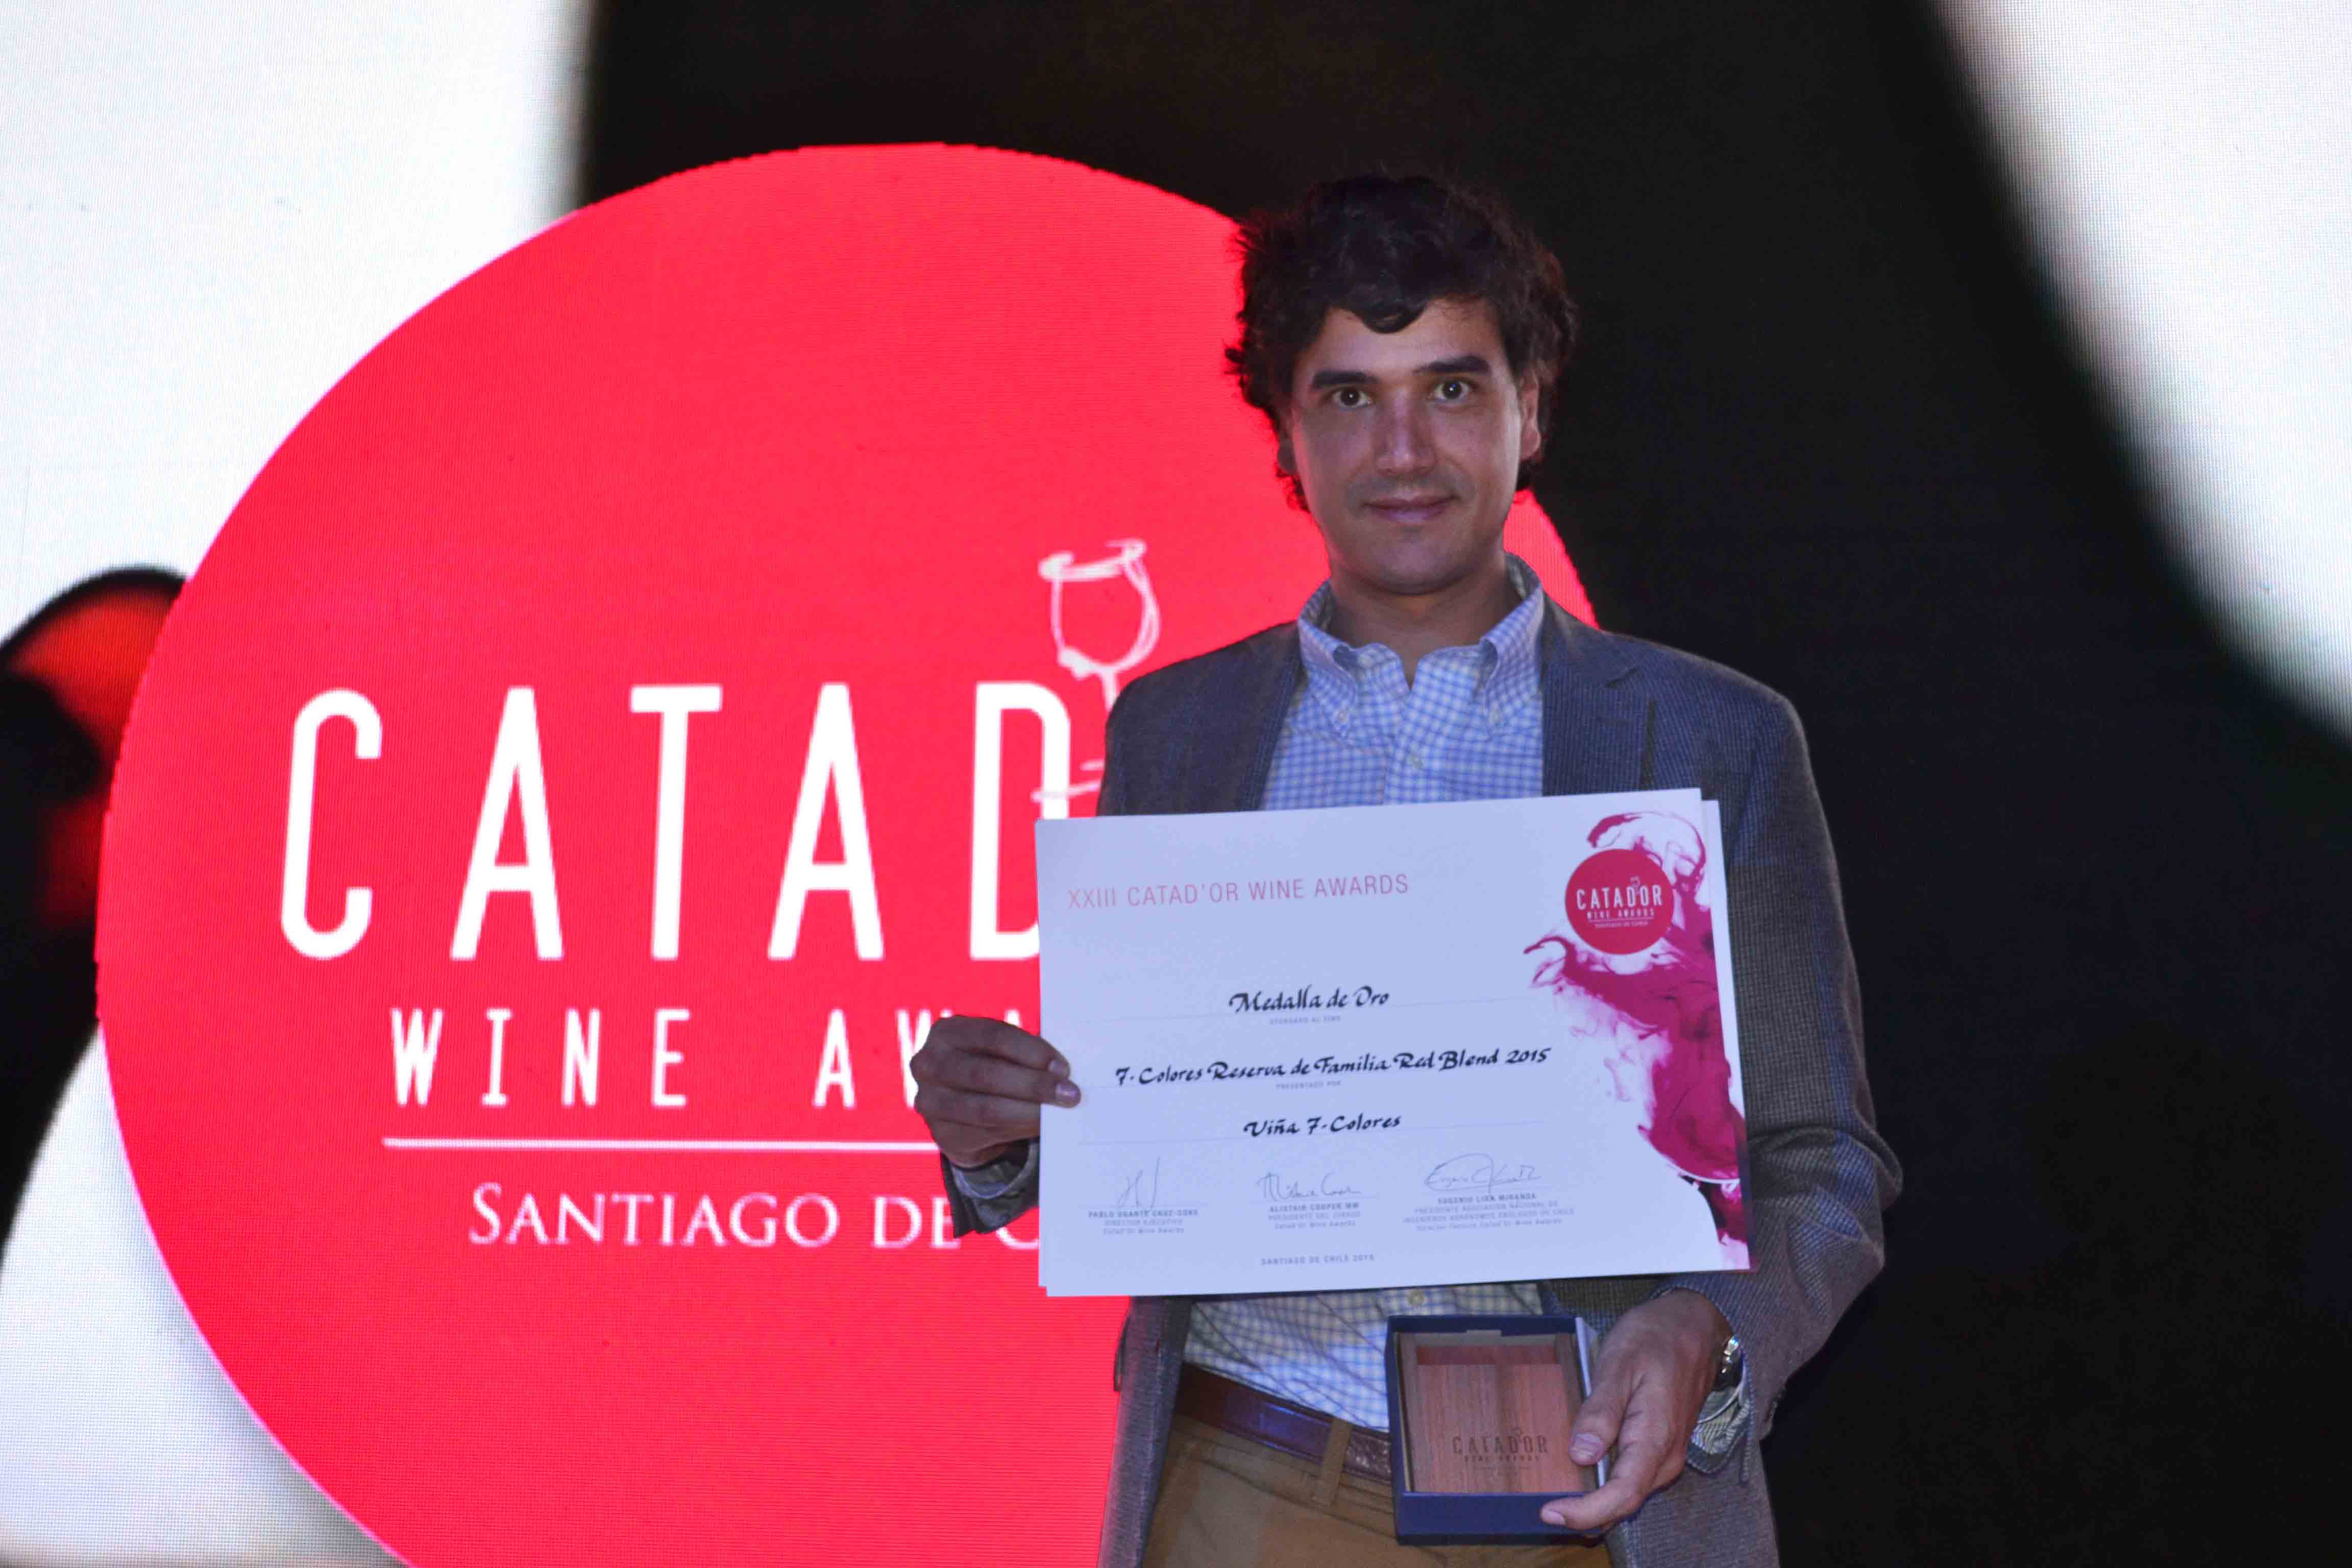 7 Colores ganó medalla de oro en Catad'Or Wine Awards